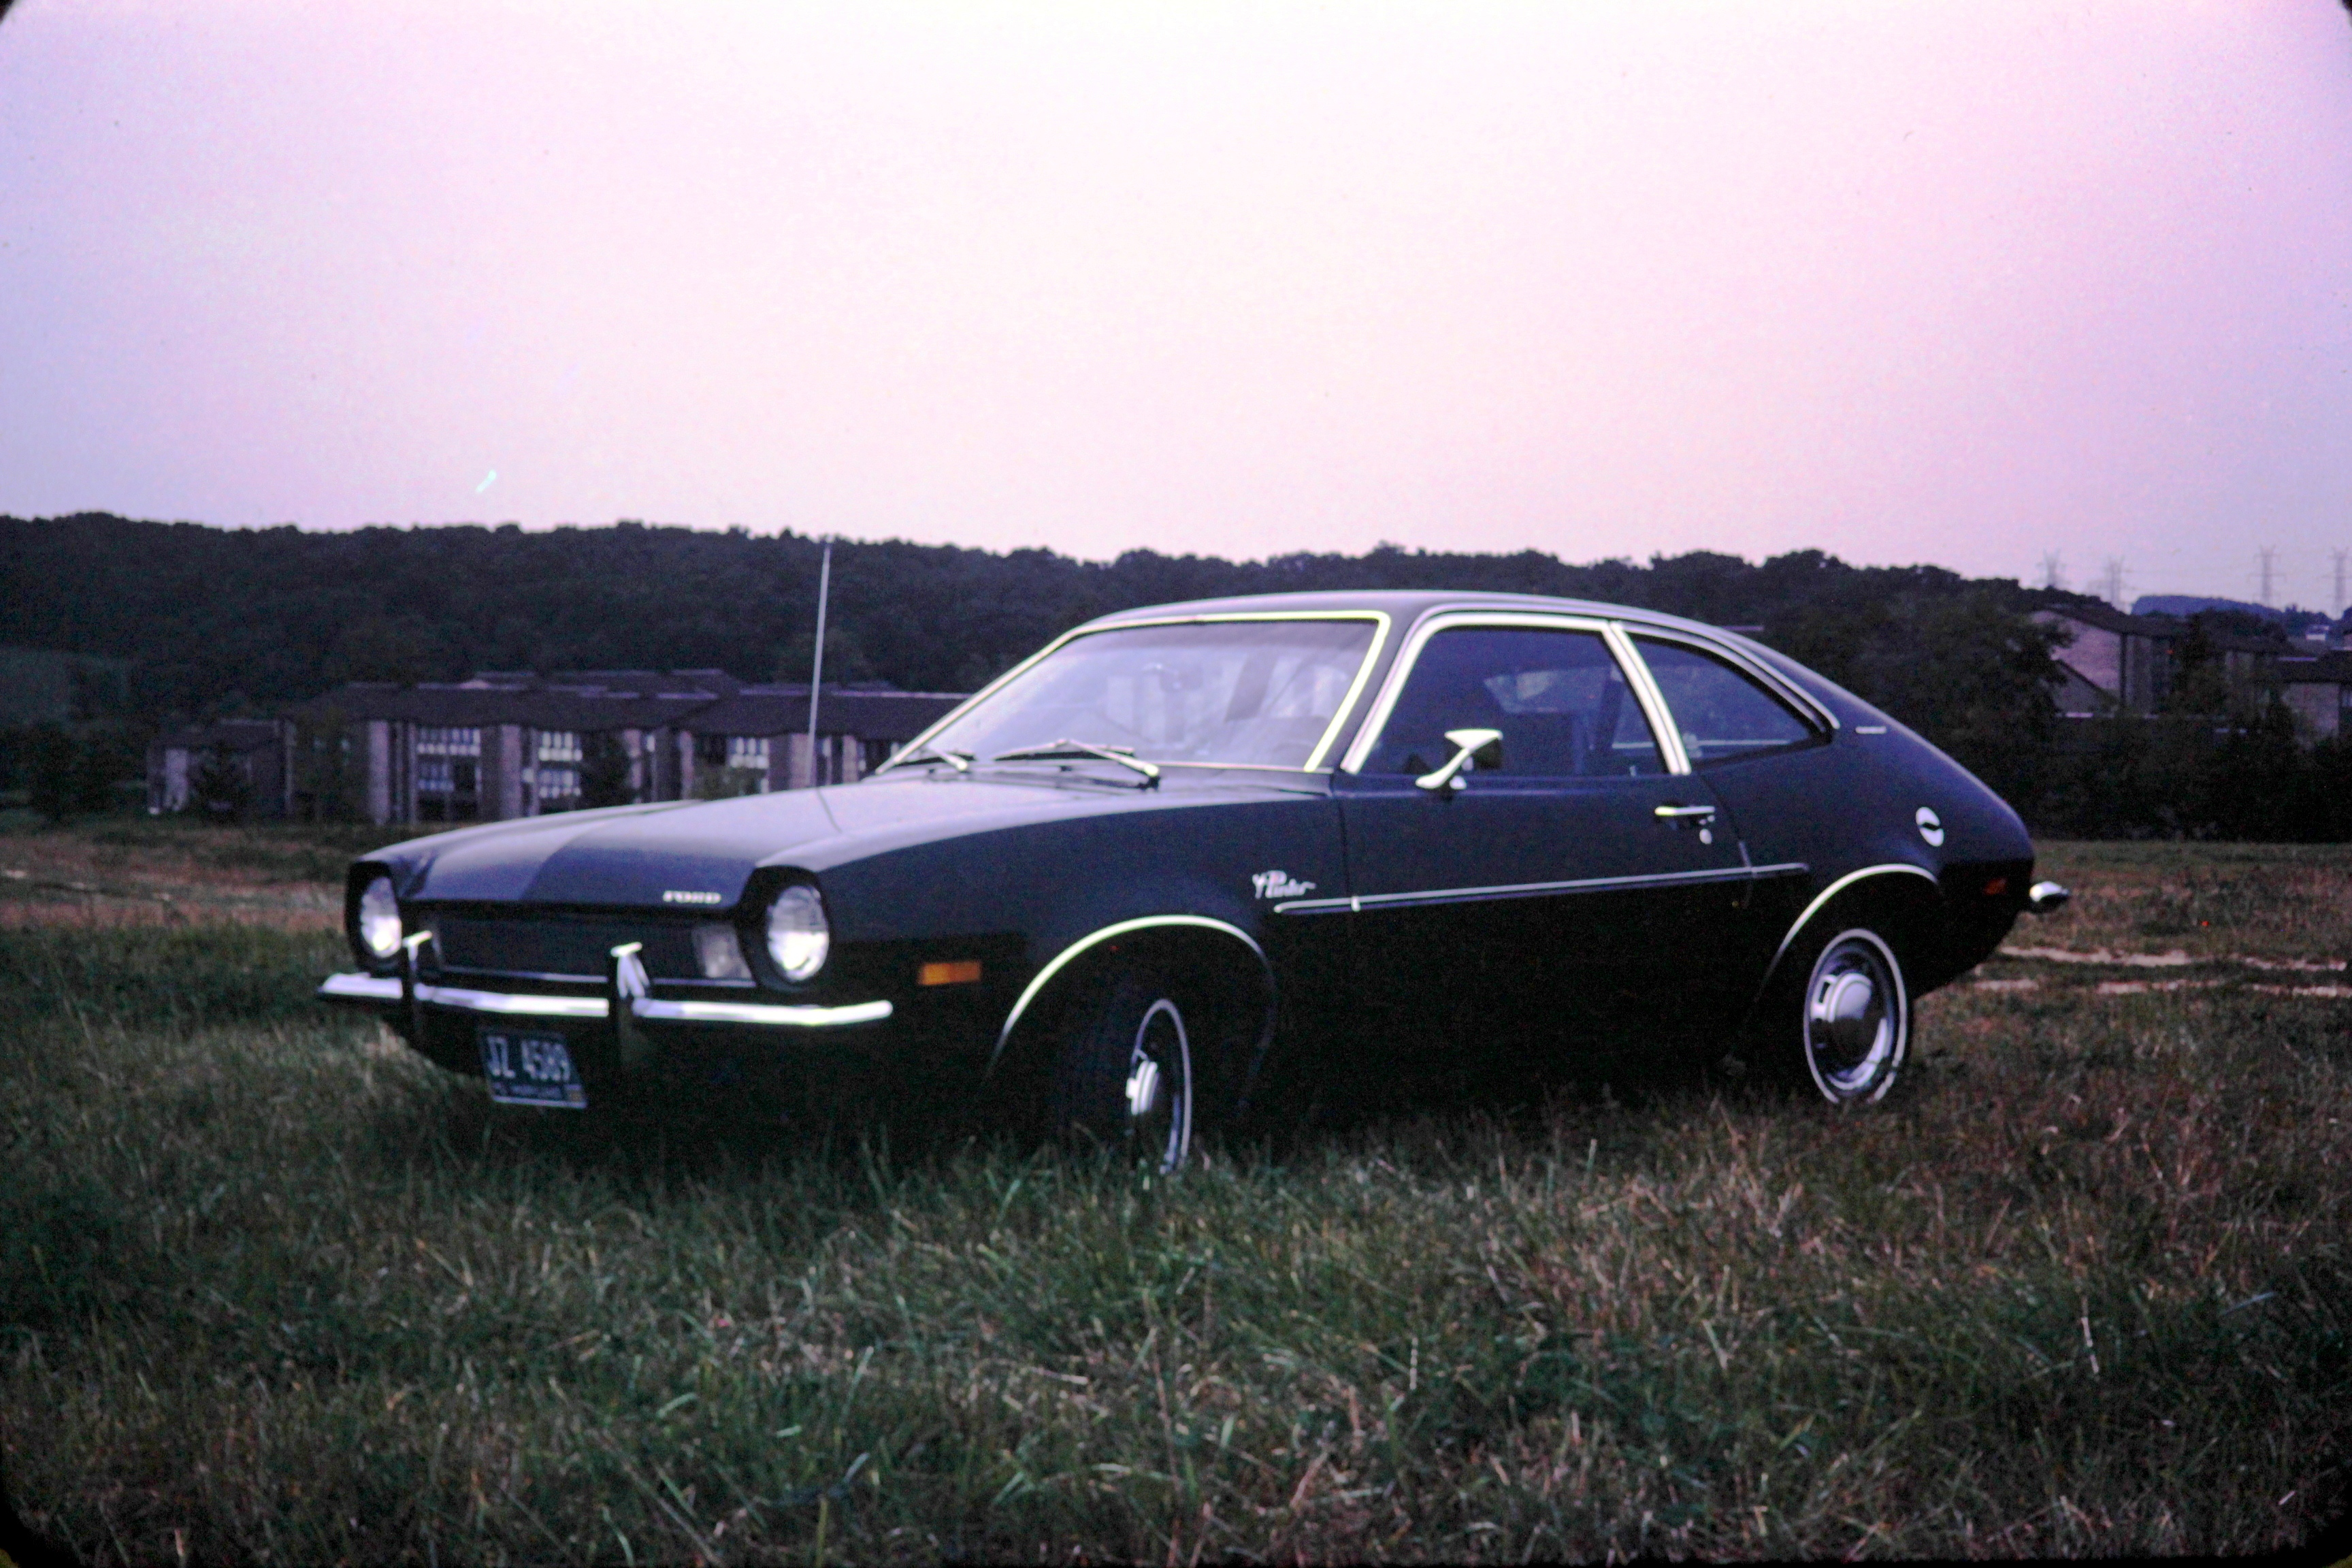 1971 Ford Pinto. (Credit Joe Haupt/Flickr Commons/CC BY- & The Cars That Made America - History in the Headlines markmcfarlin.com